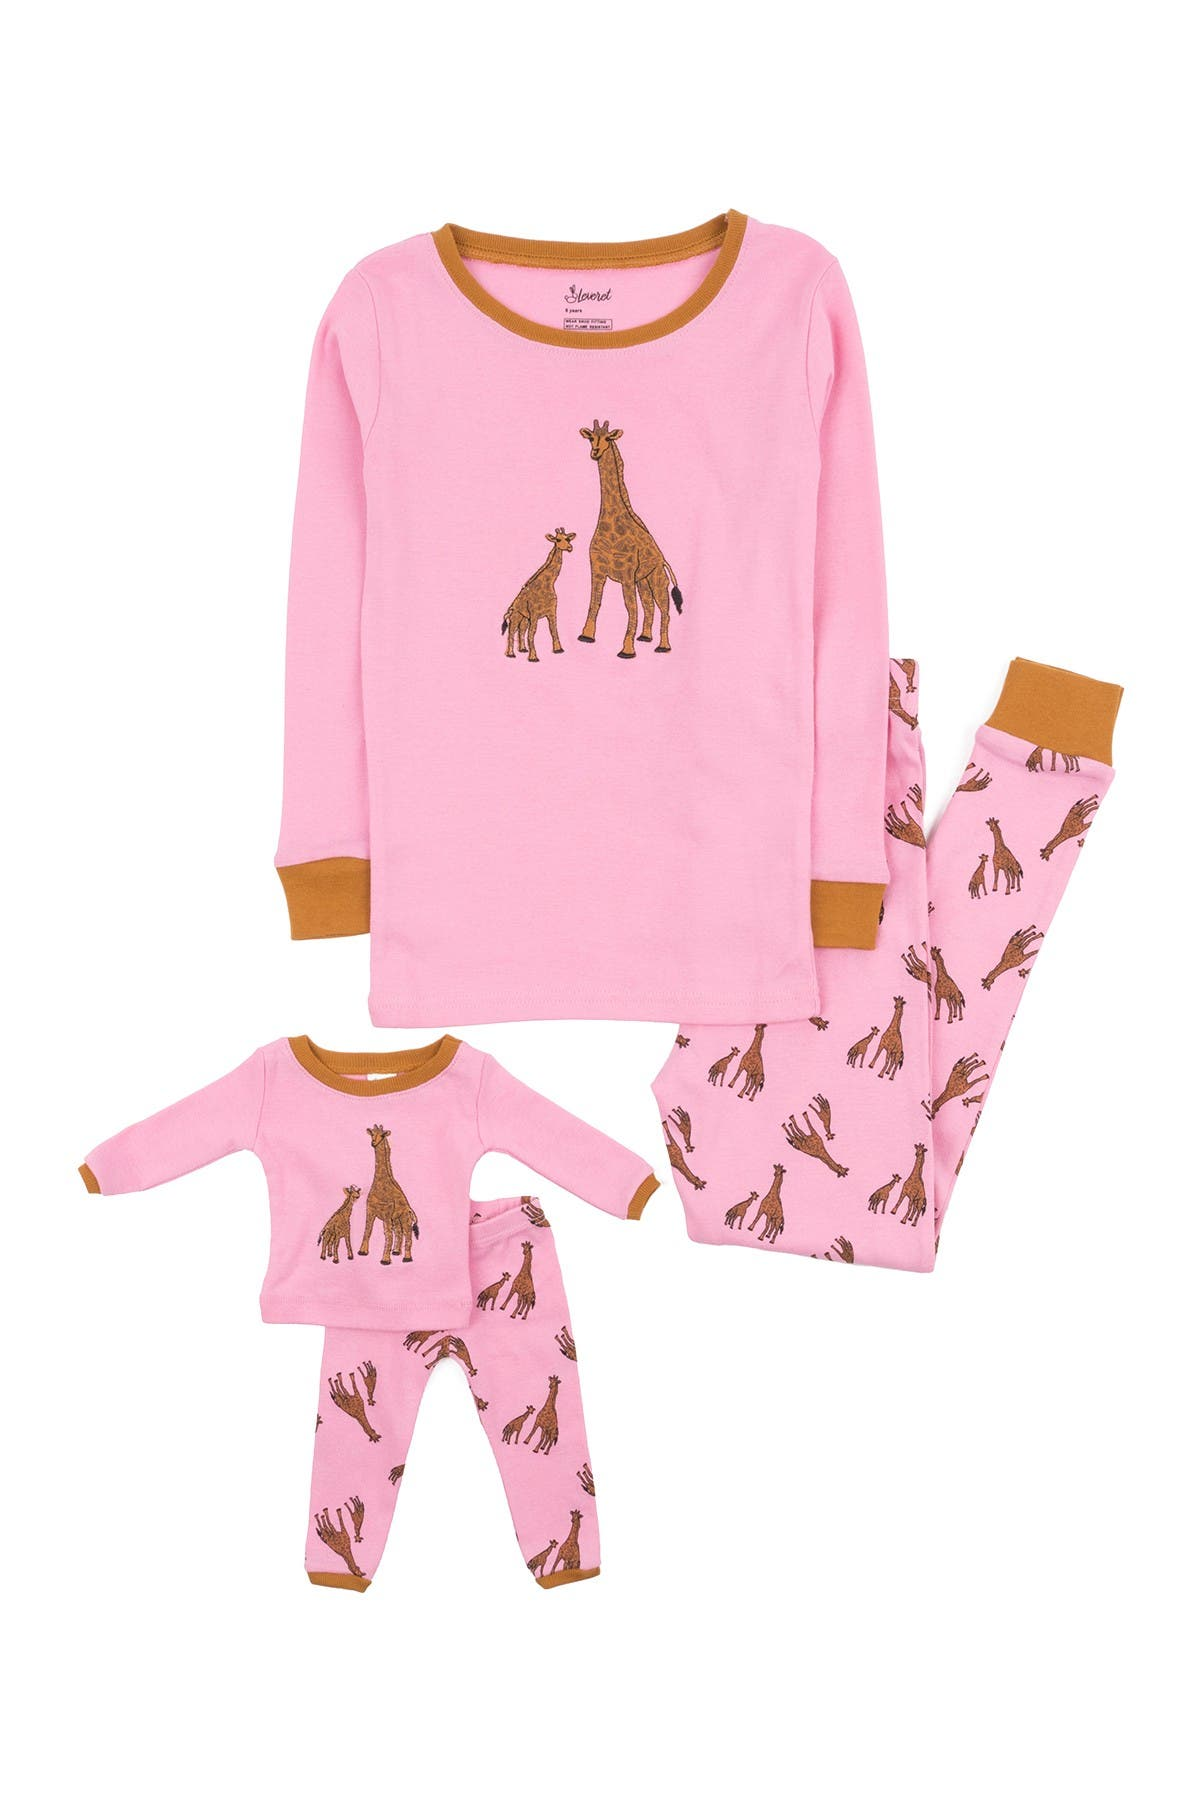 Image of Leveret Giraffe Pajama & Matching Doll Pajama Set